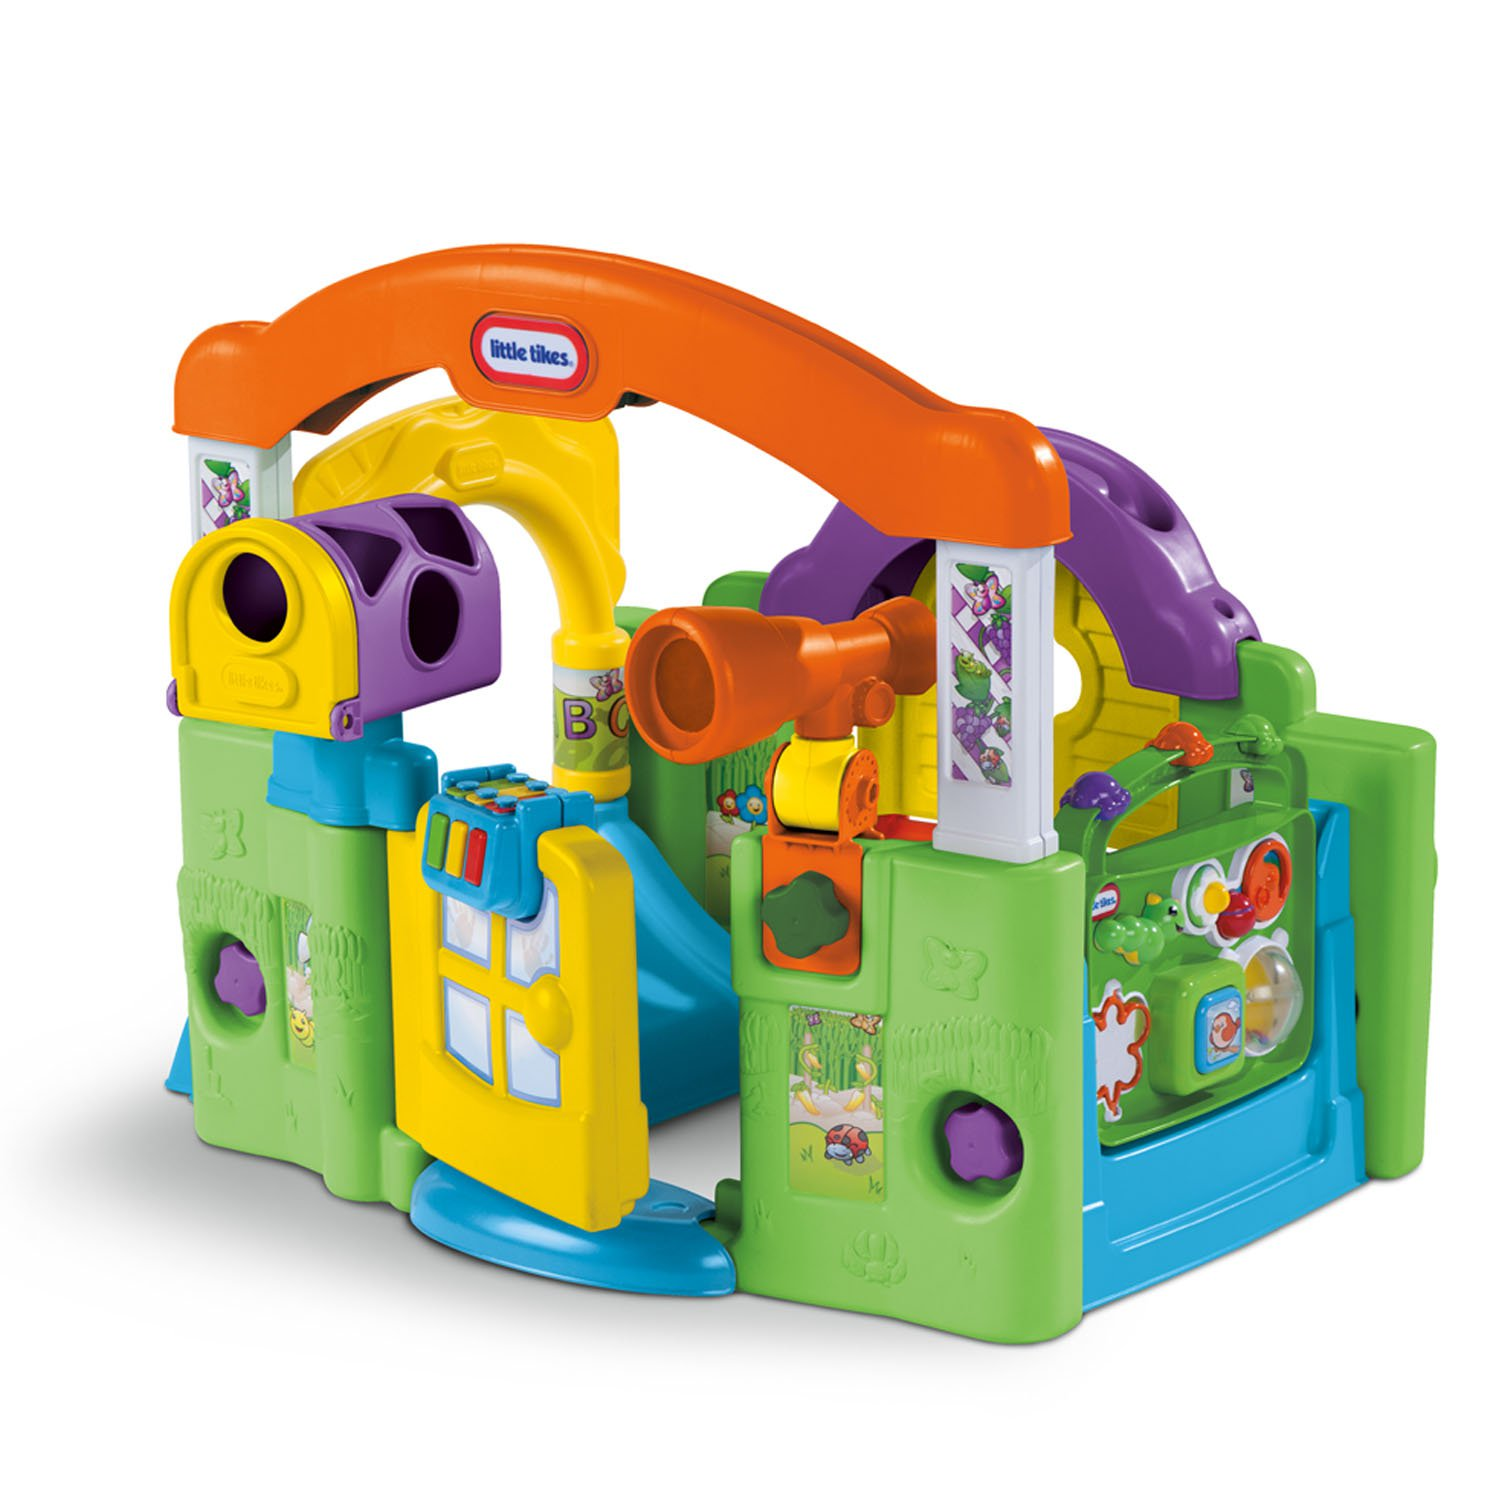 Little Tikes Activity Garden Playhouse